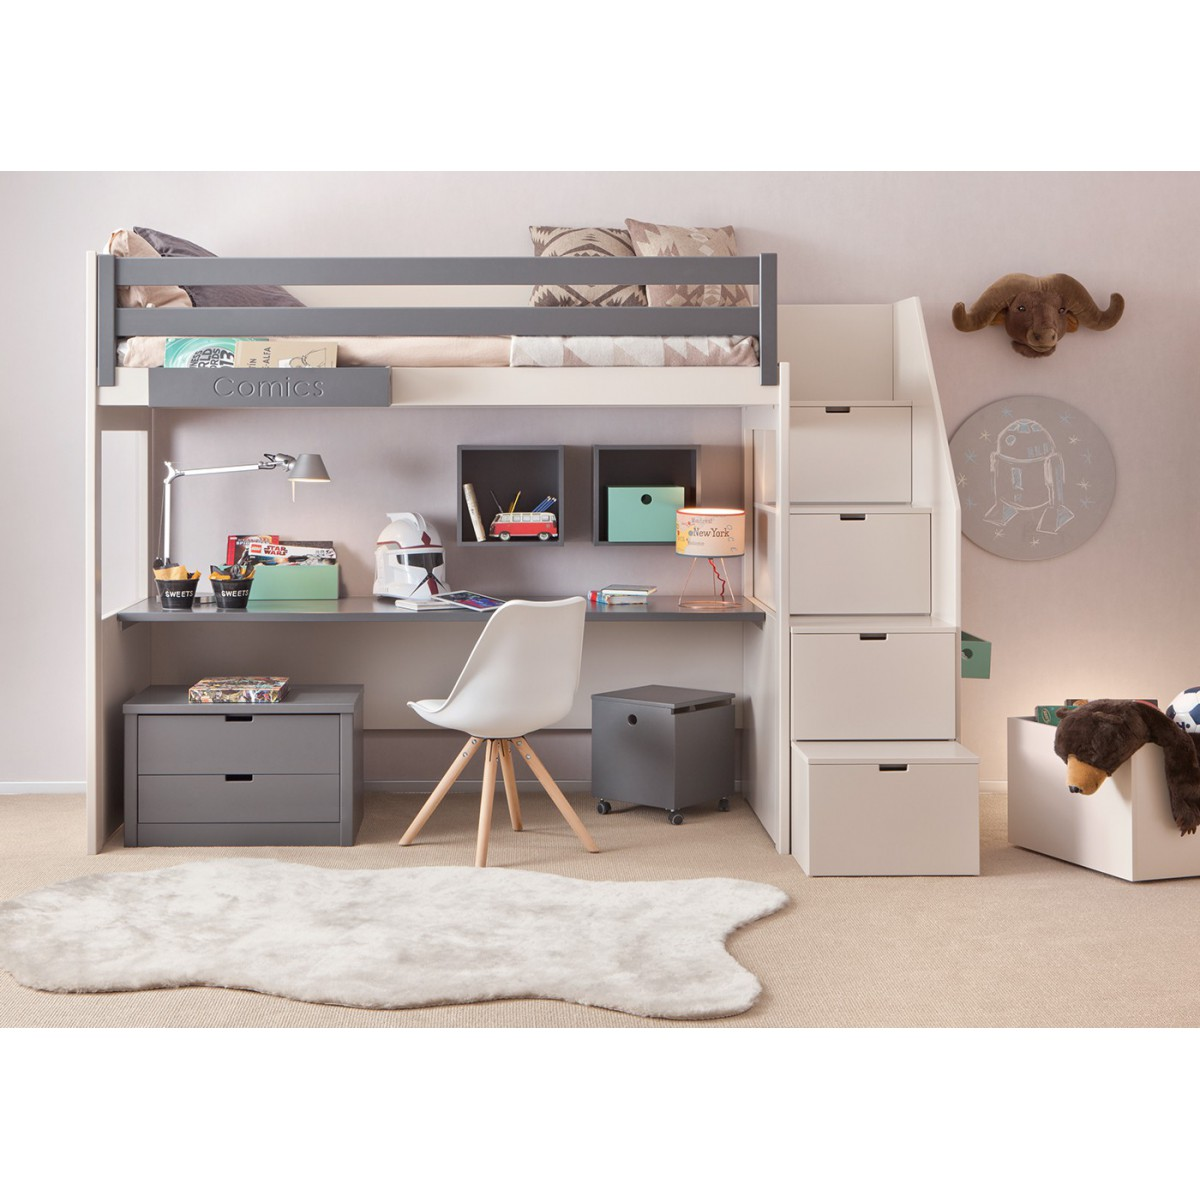 Chambre design sp cial ados juniors sign enfant design - Mezzanine bureau enfant ...